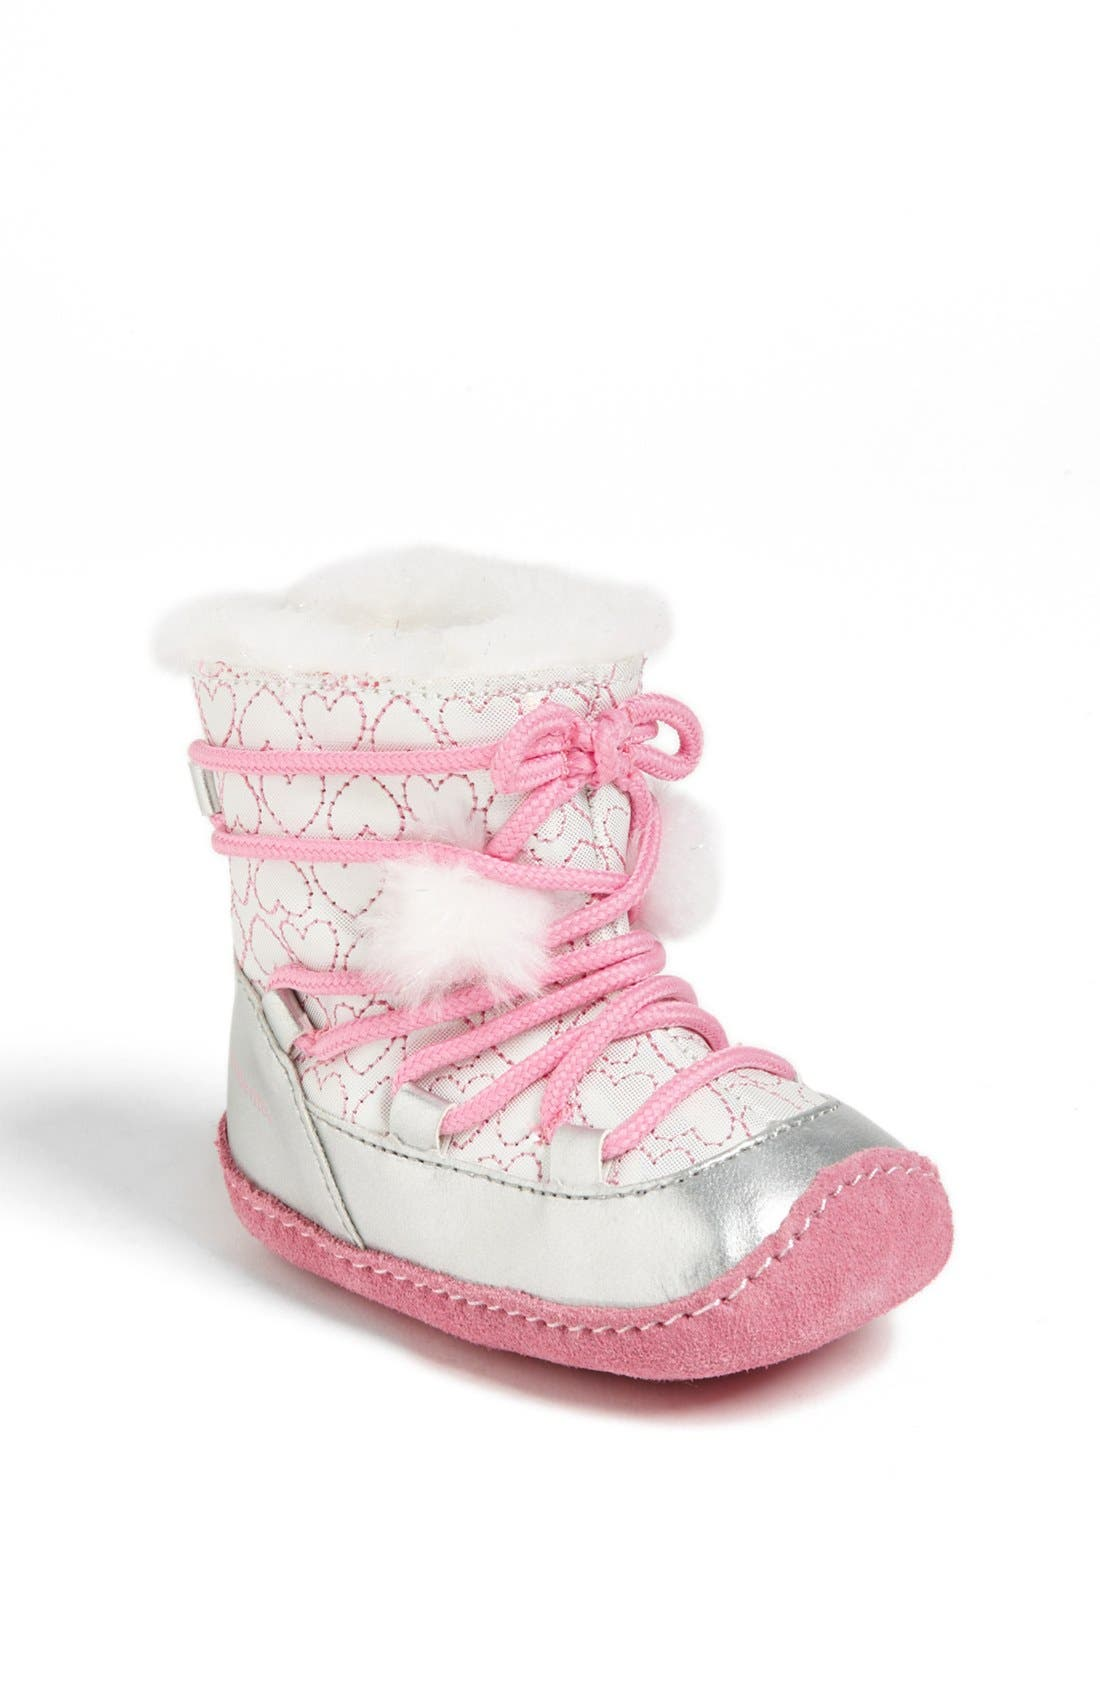 Alternate Image 1 Selected - Stride Rite 'Crawl - Snowdrop' Boot (Baby Girls)